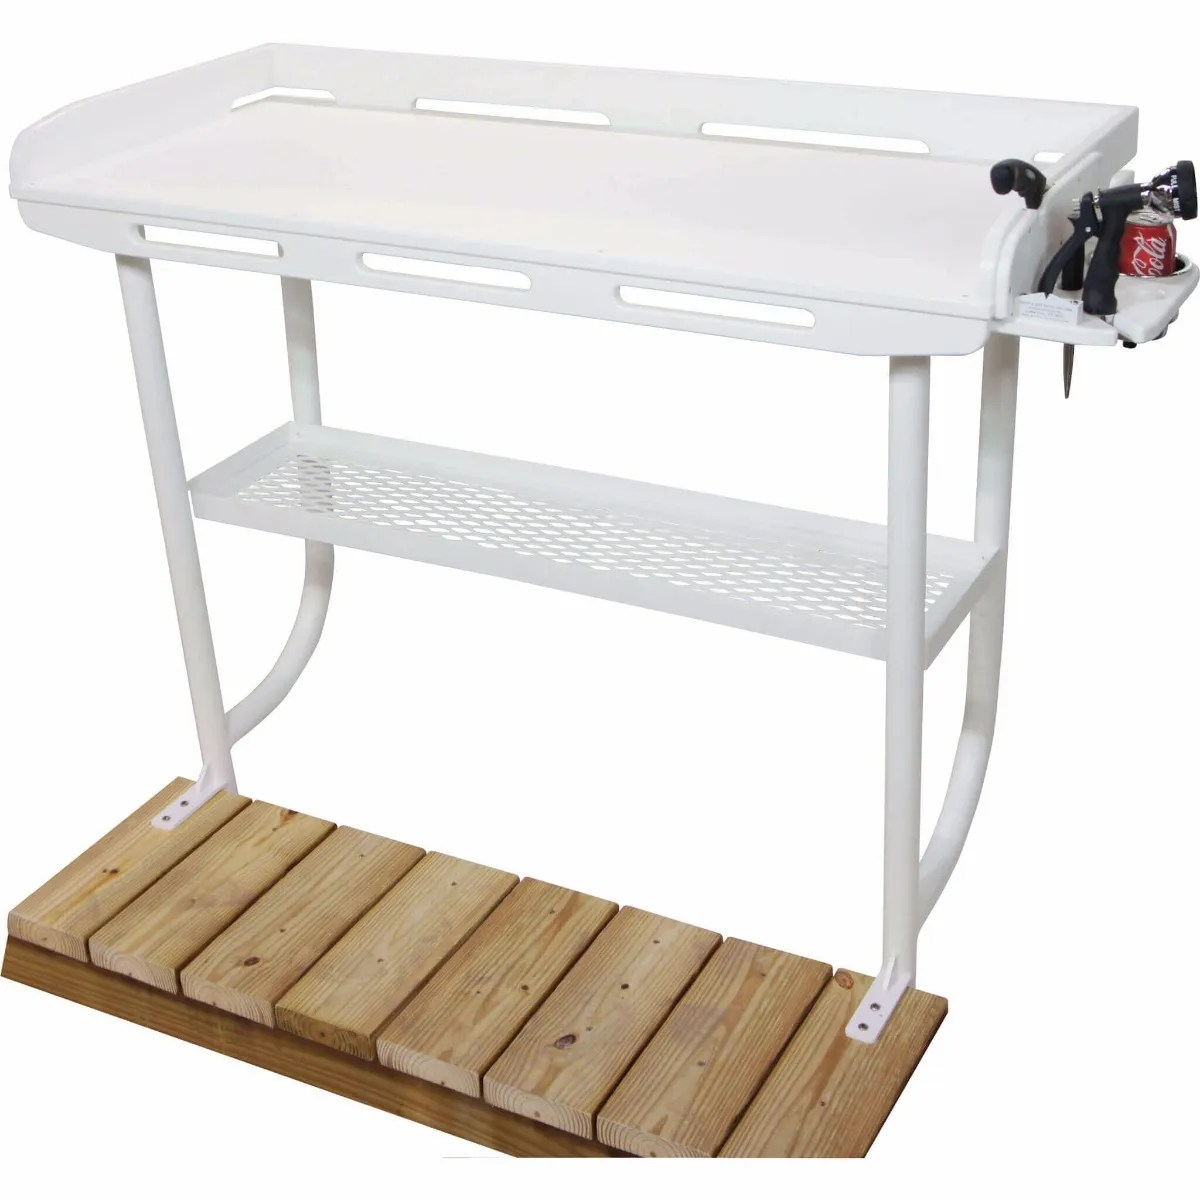 Dorable Portable Camp Fish Cleaning Table With Faucet Component ...